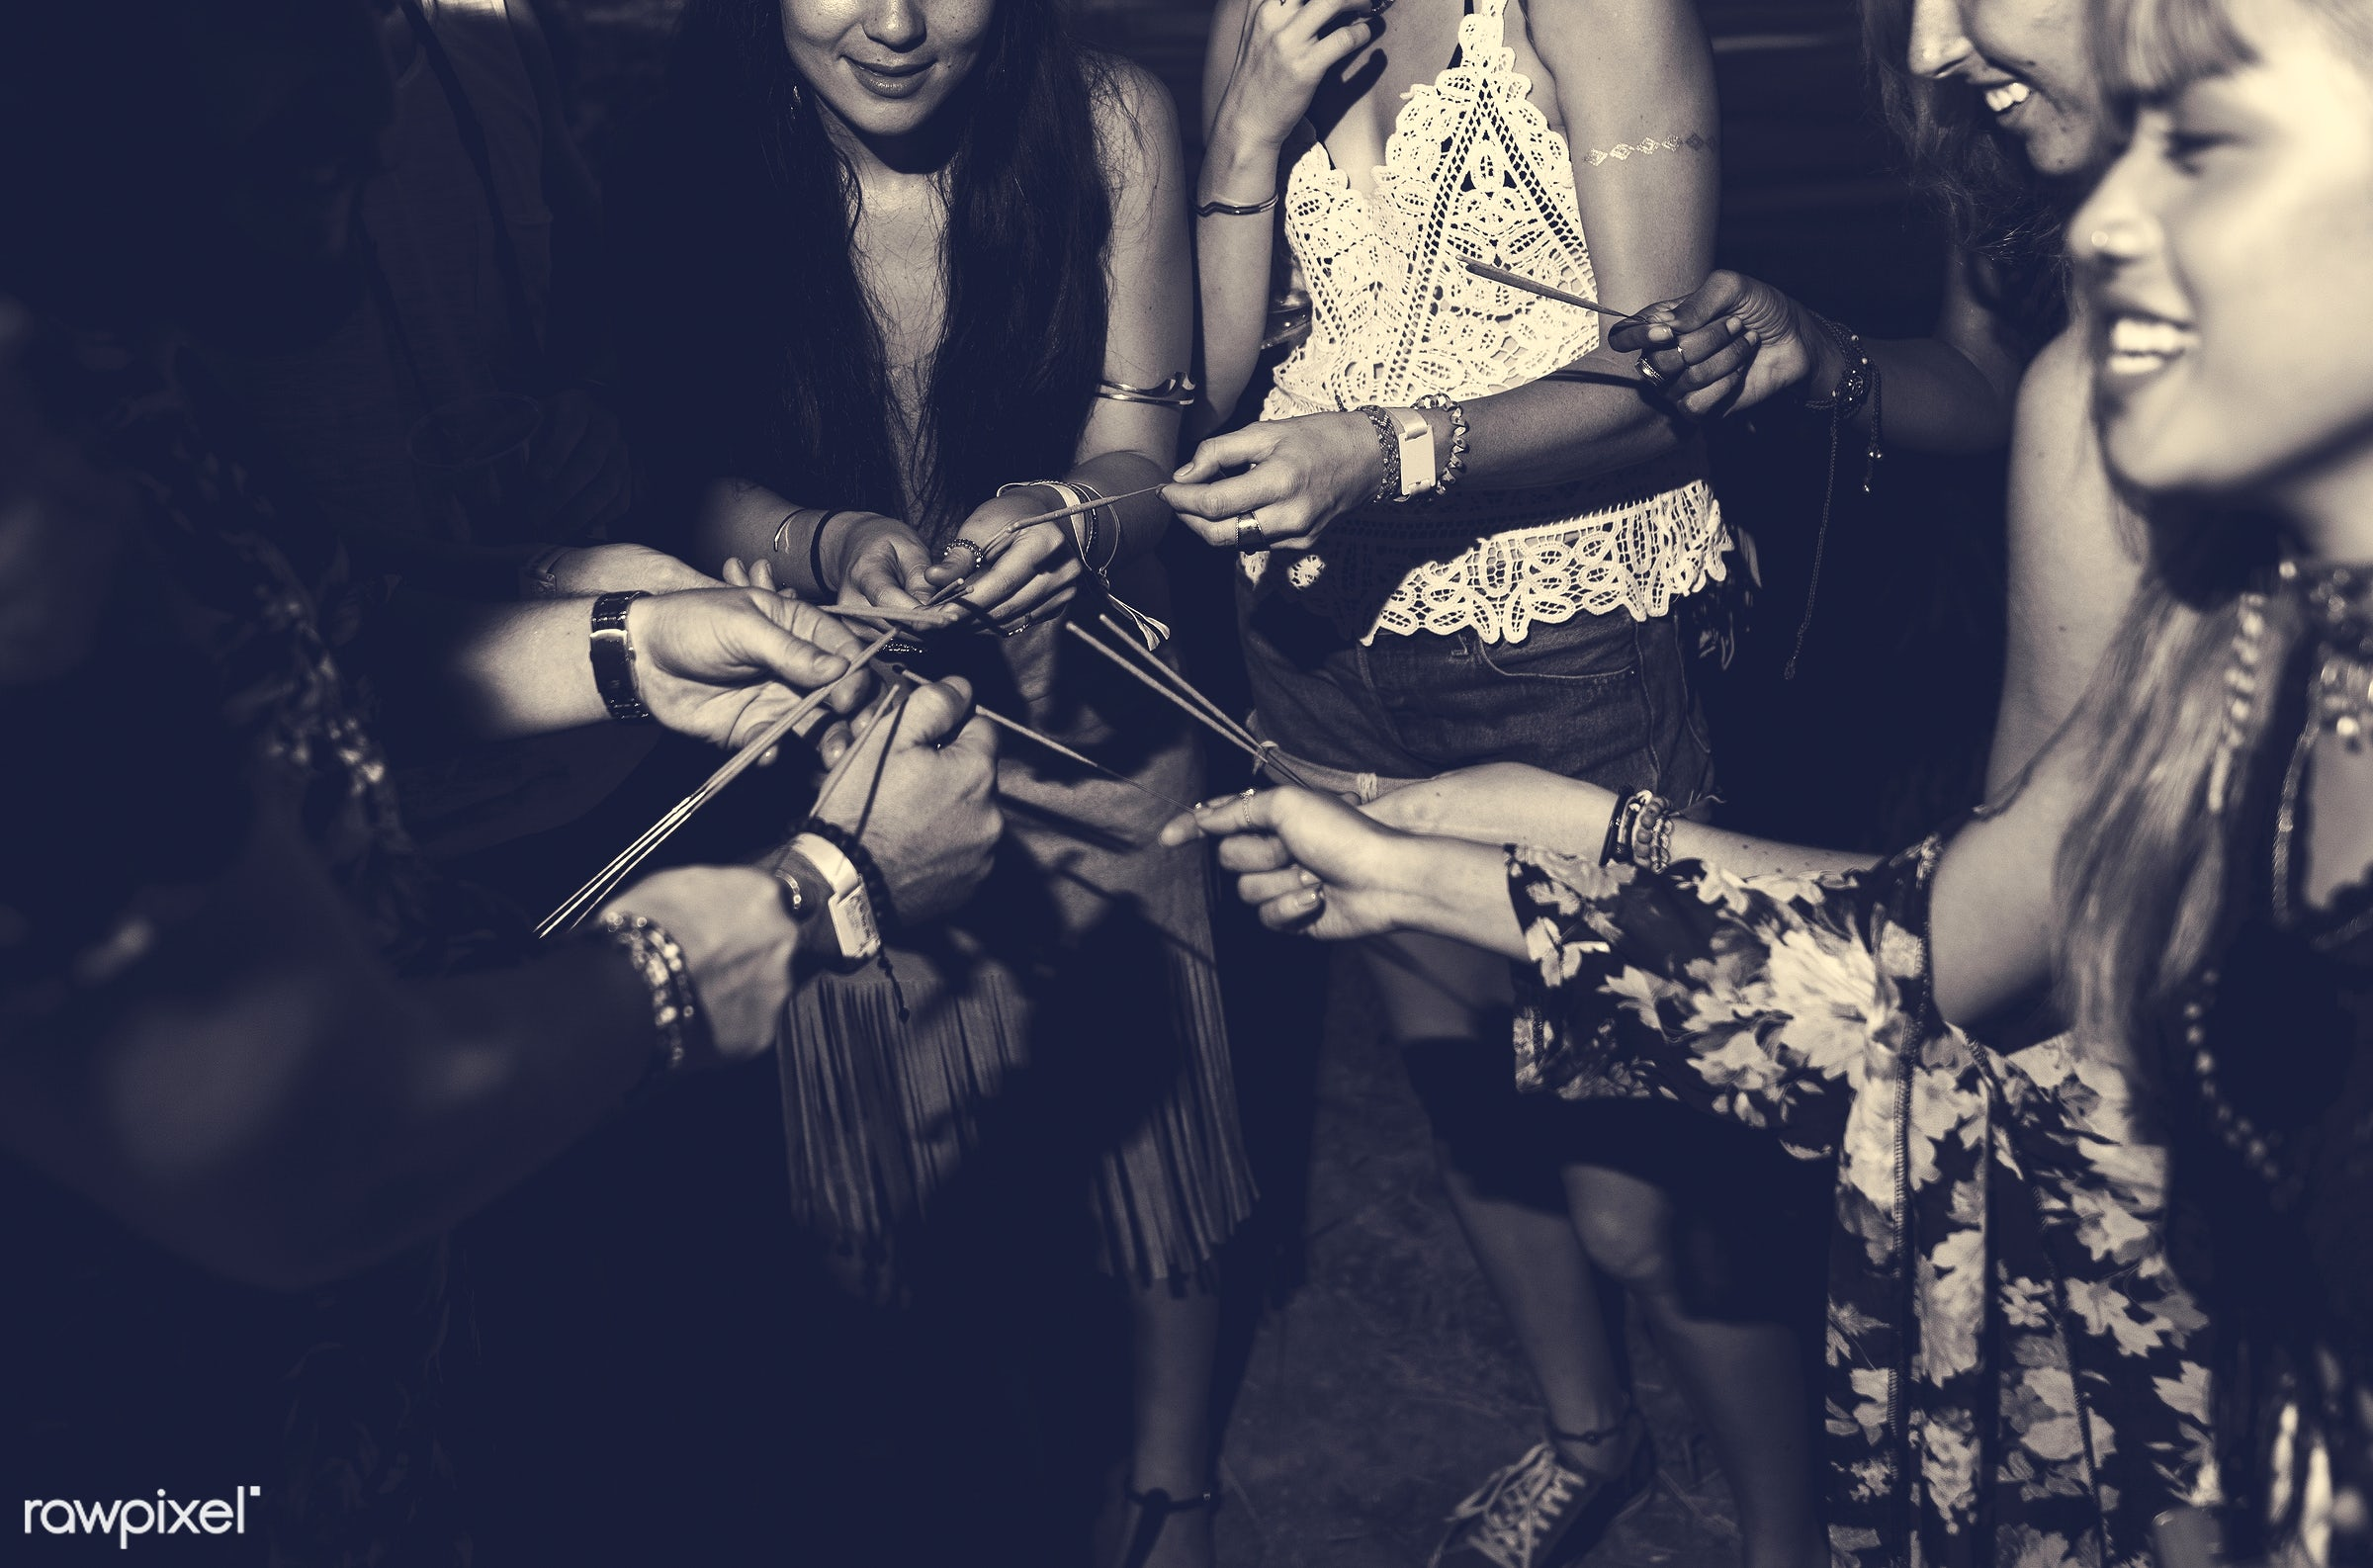 concert, person, relax, carefree, party, people, together, friends, sparkler, socializing, hands, woman, event, lifestyle,...